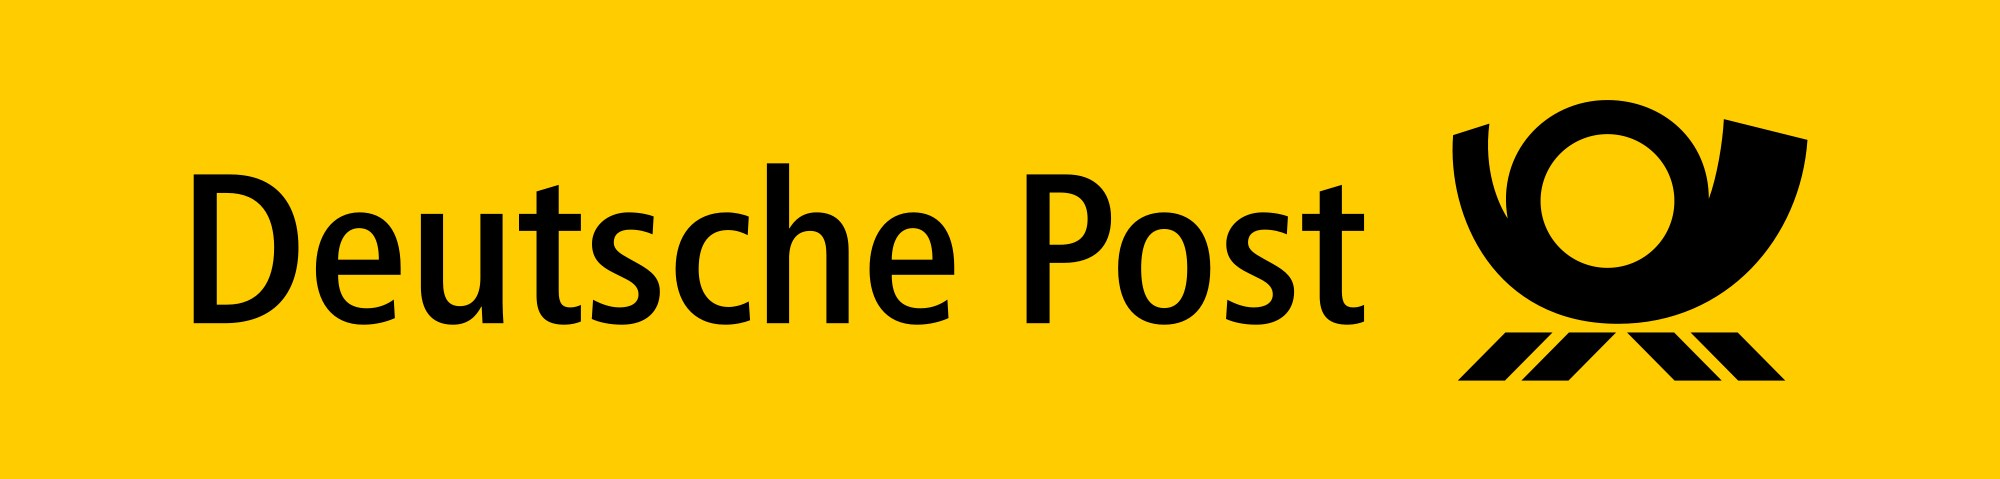 deutsche_post.jpg